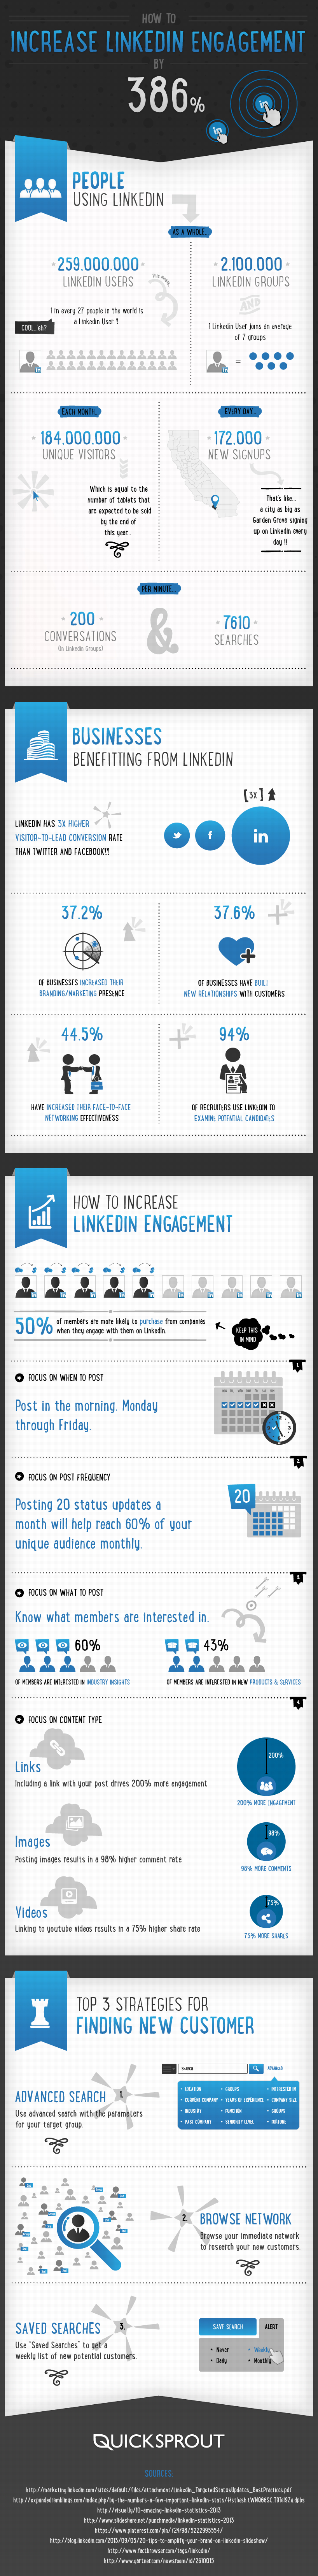 Increase LinkedIn Engagement by 386%25 Infographic